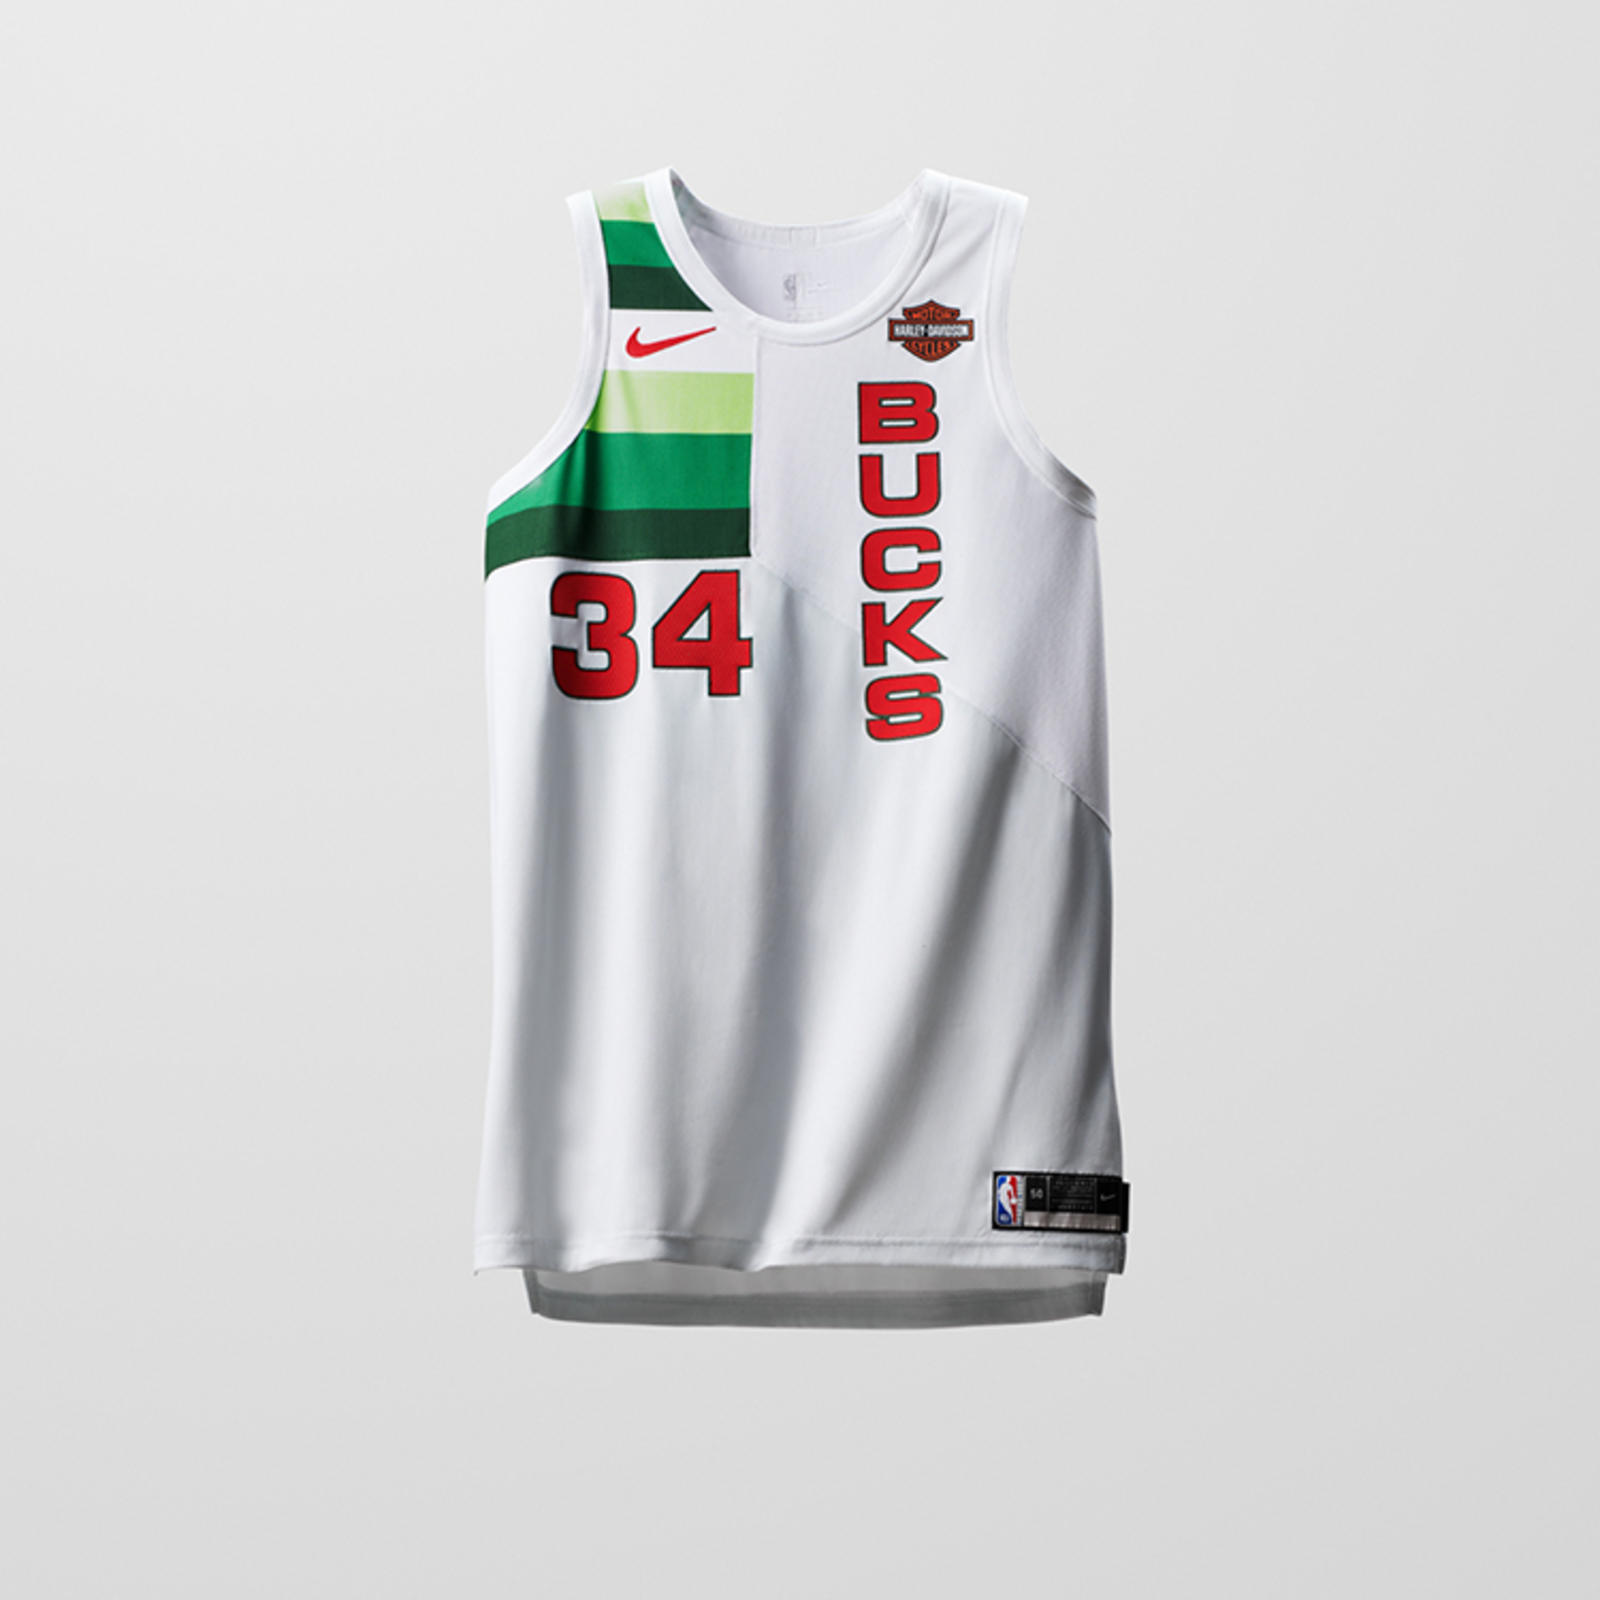 80b1c09b2b28 Introducing the Nike x NBA EARNED Edition Uniforms 15